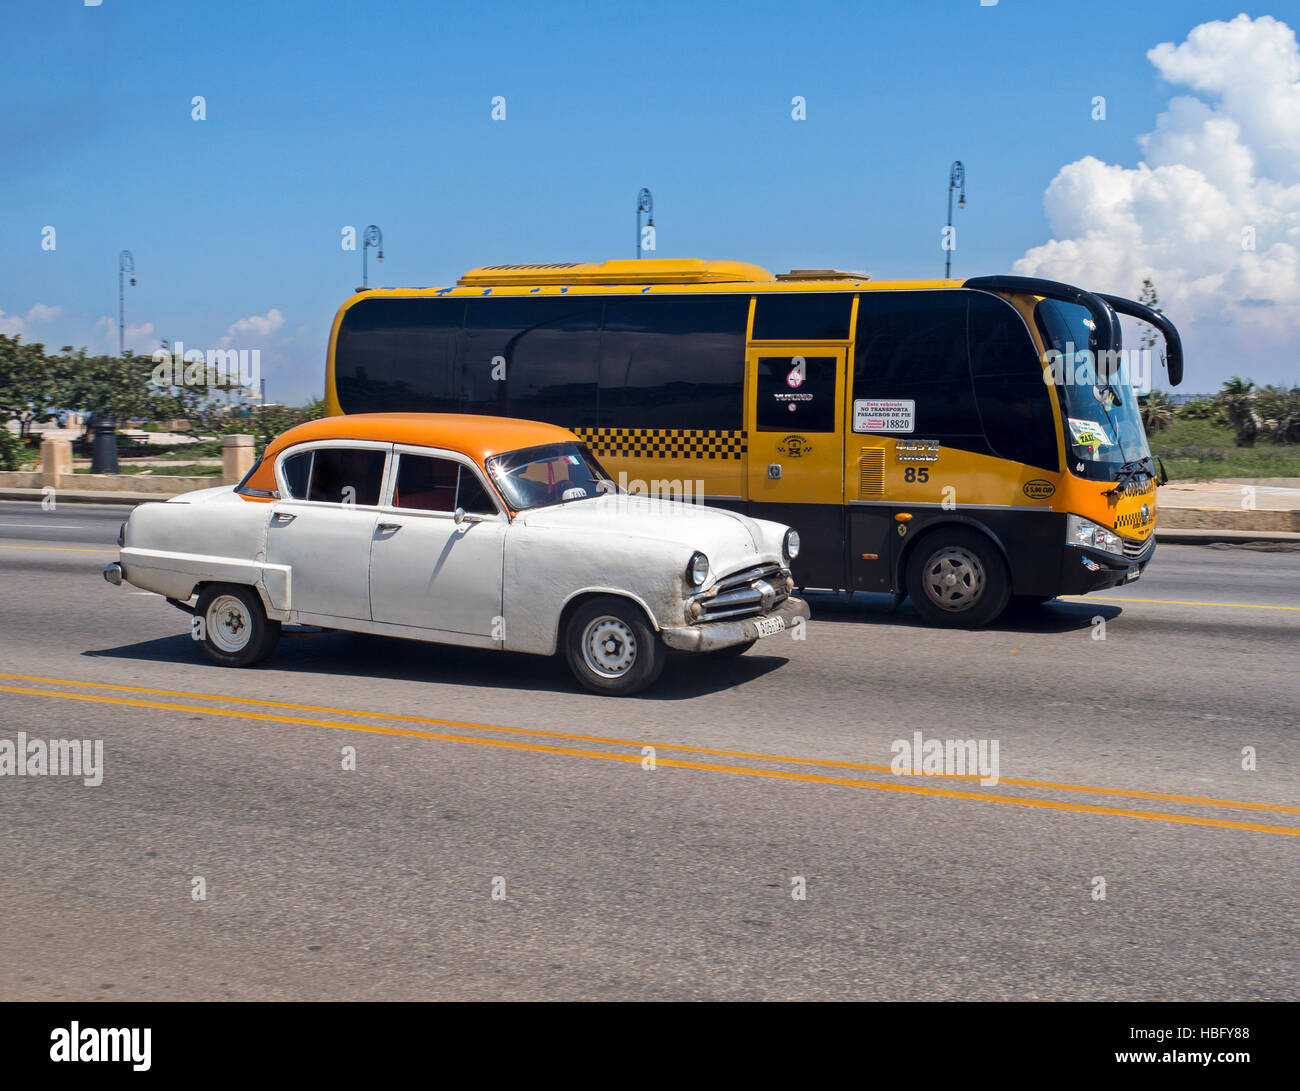 Red and white classic American car. Havana Cuba - Stock Image